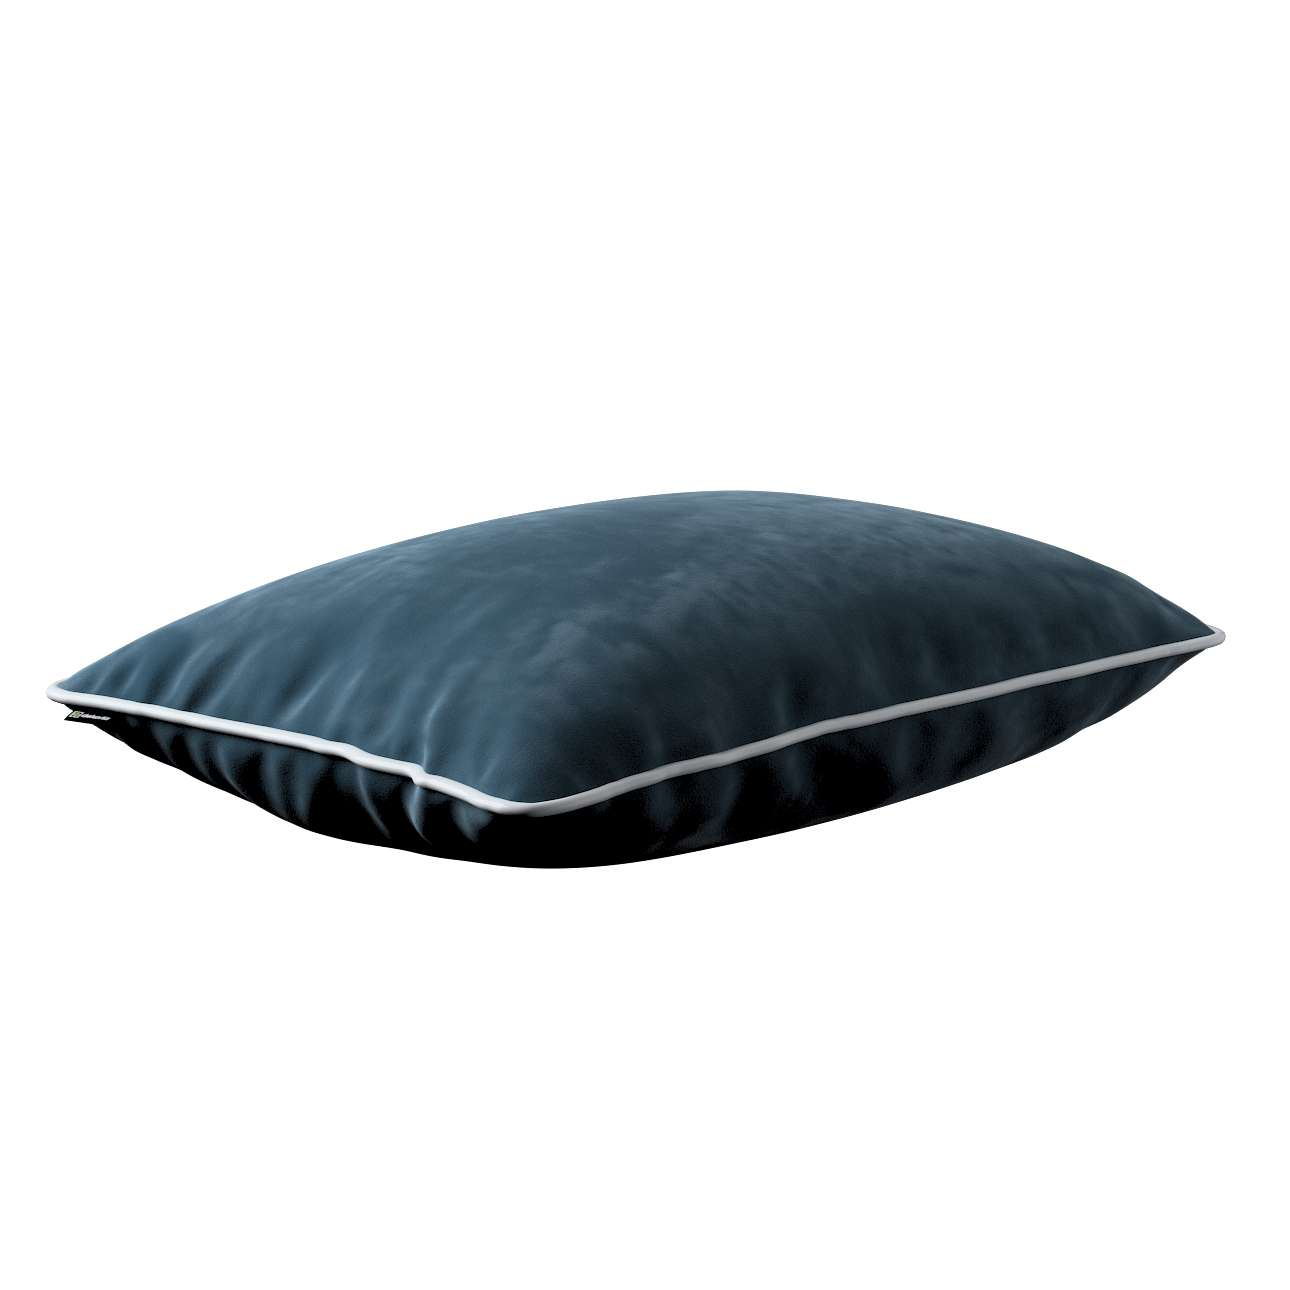 Laura rectangular velvet cushion cover with piping in collection Velvet, fabric: 704-16